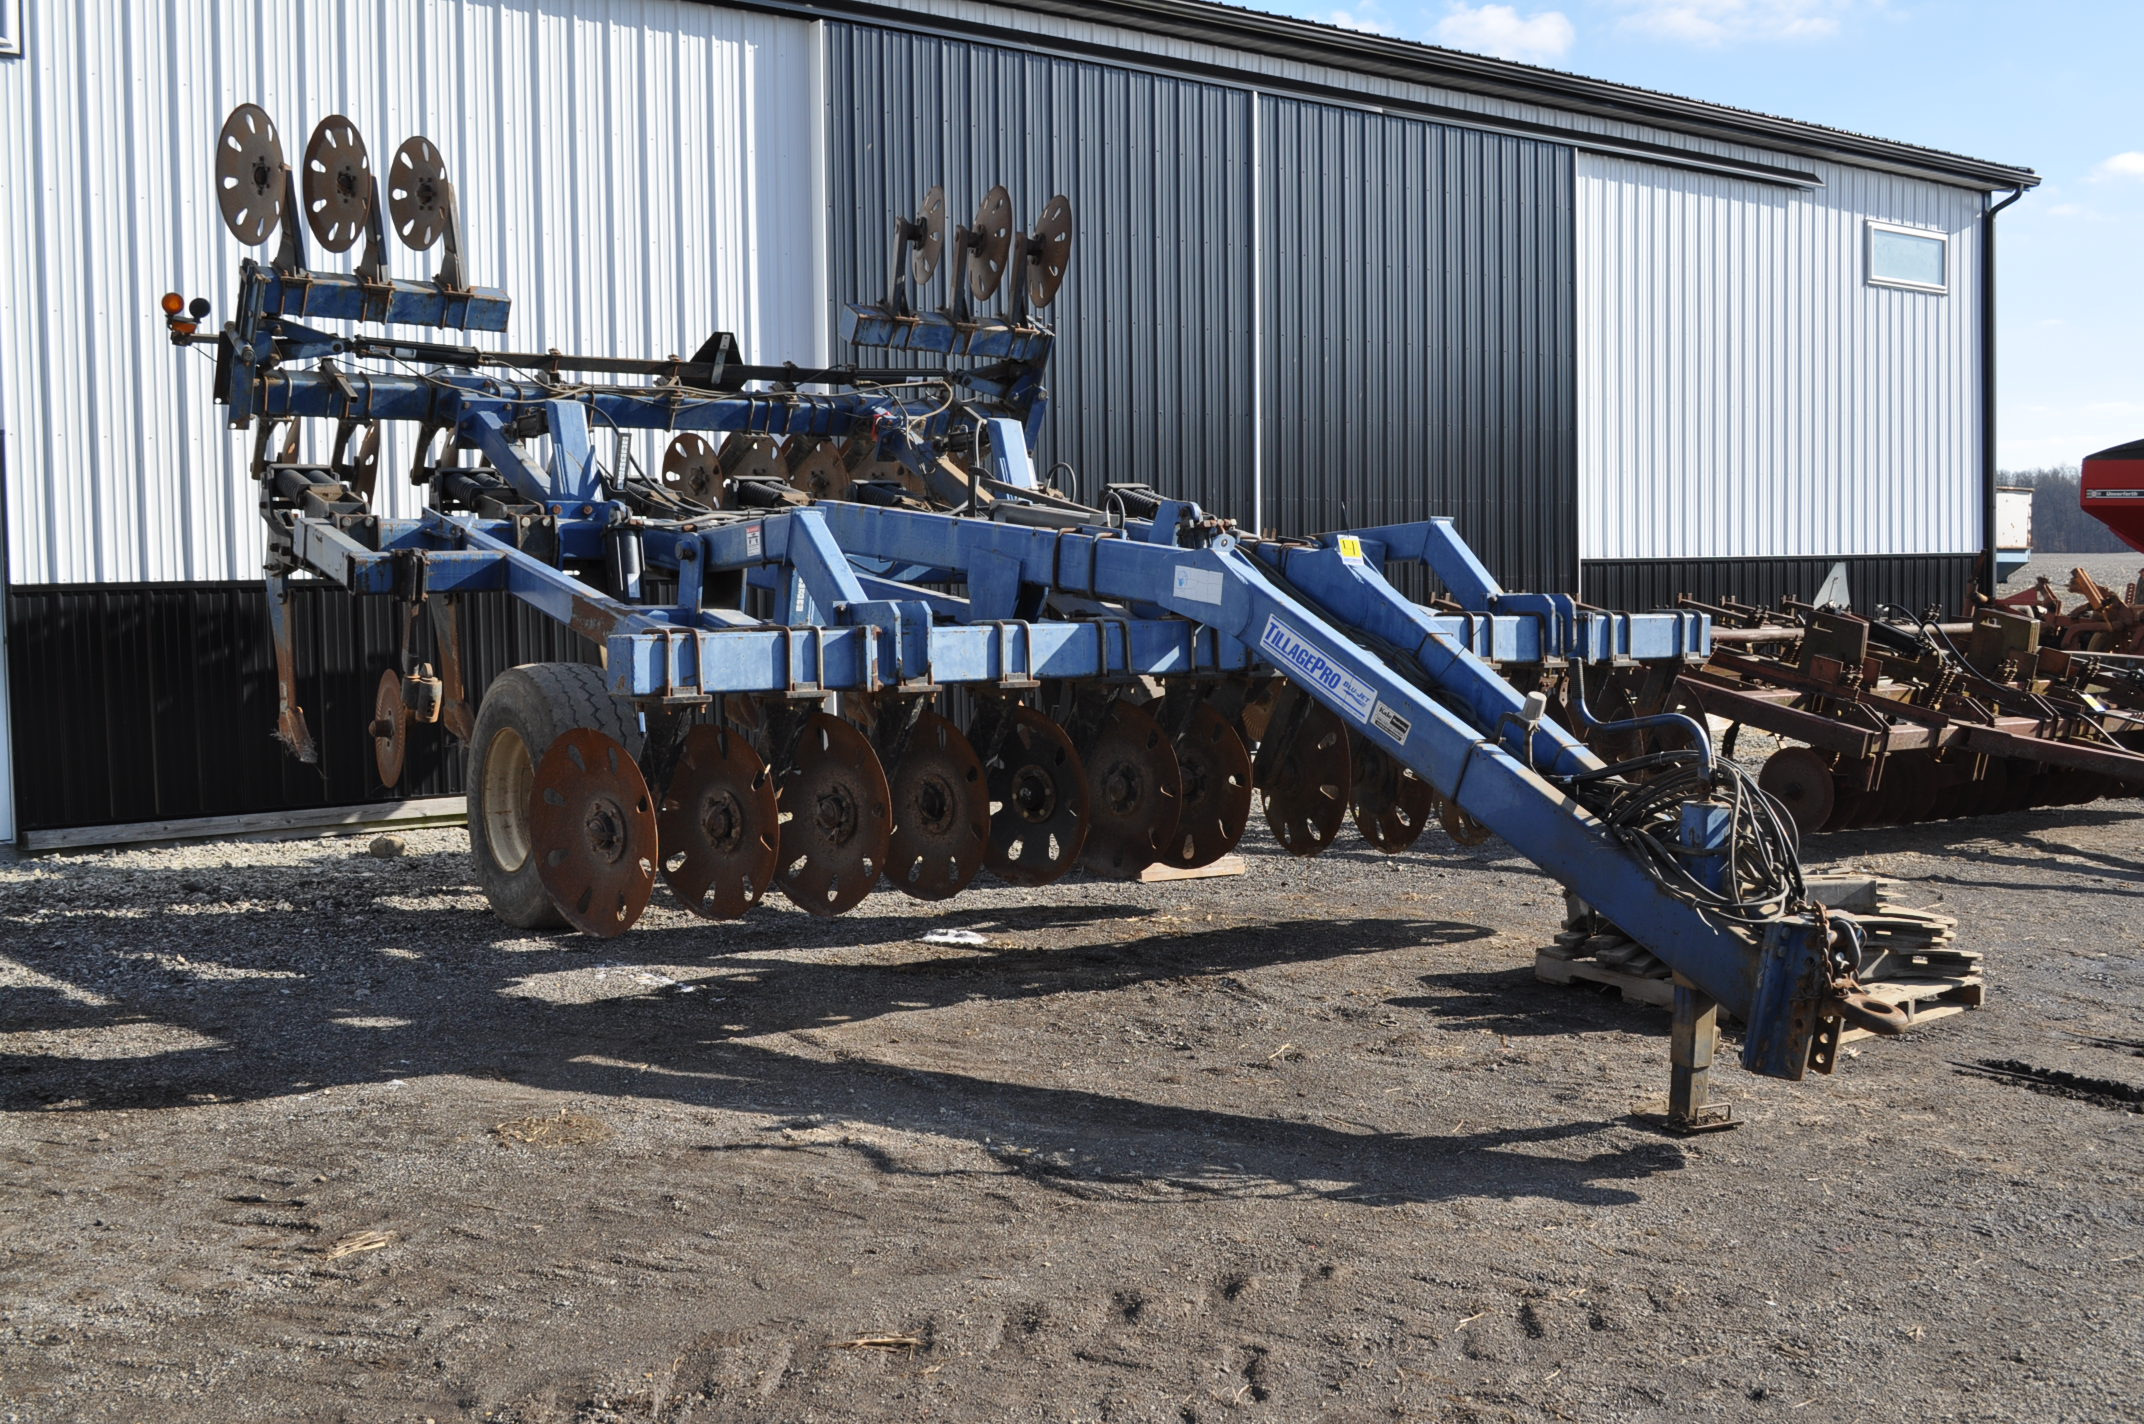 Blu-Jet Tillage Pro 7 shank inline ripper, front and rear hyd adjustable discs, sells with extra - Image 4 of 18